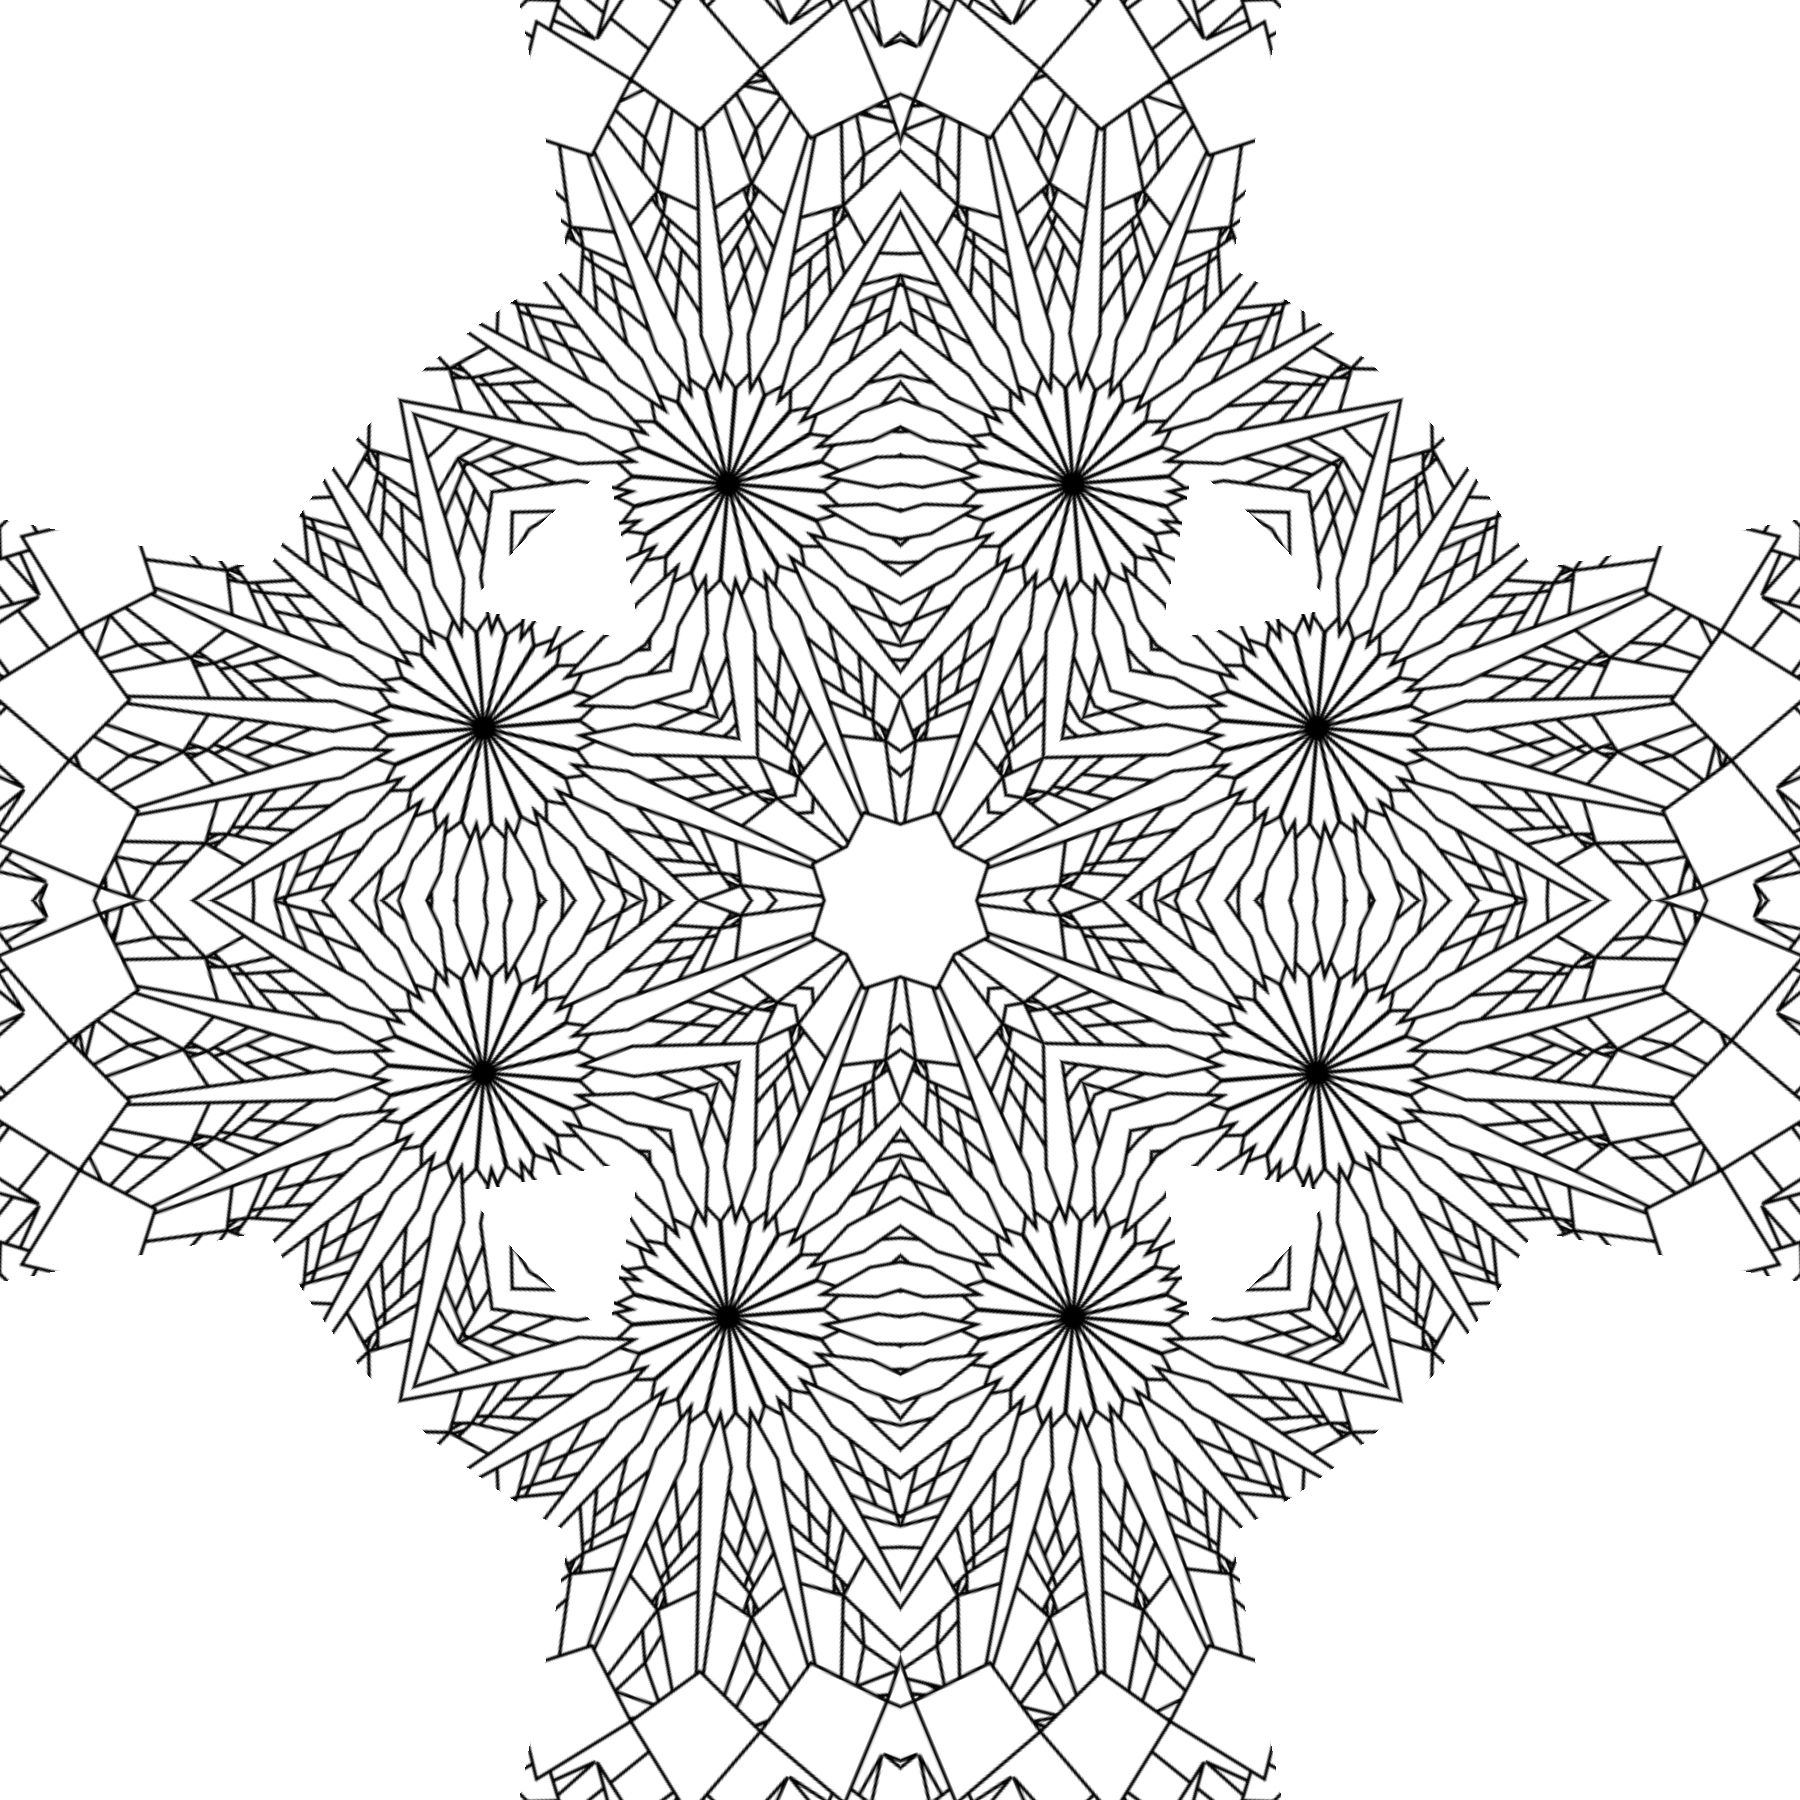 printable patterns to colour 20 attractive coloring pages for adults we need fun to printable patterns colour